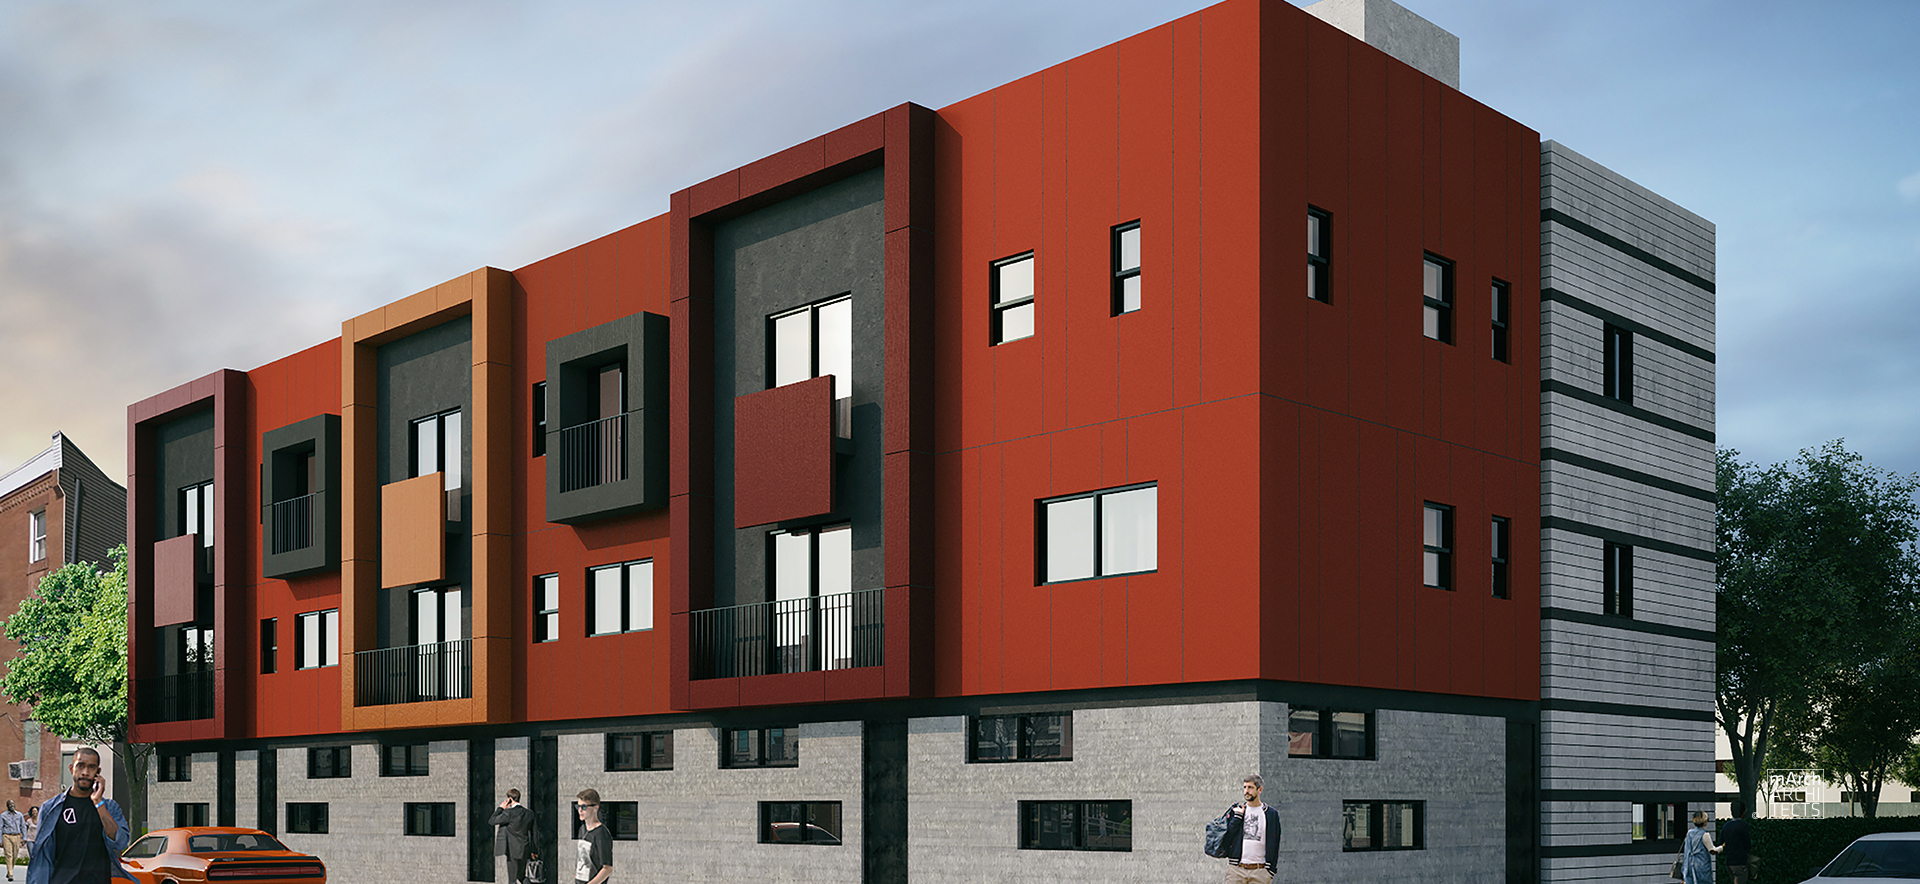 06 | Townhouse cluster